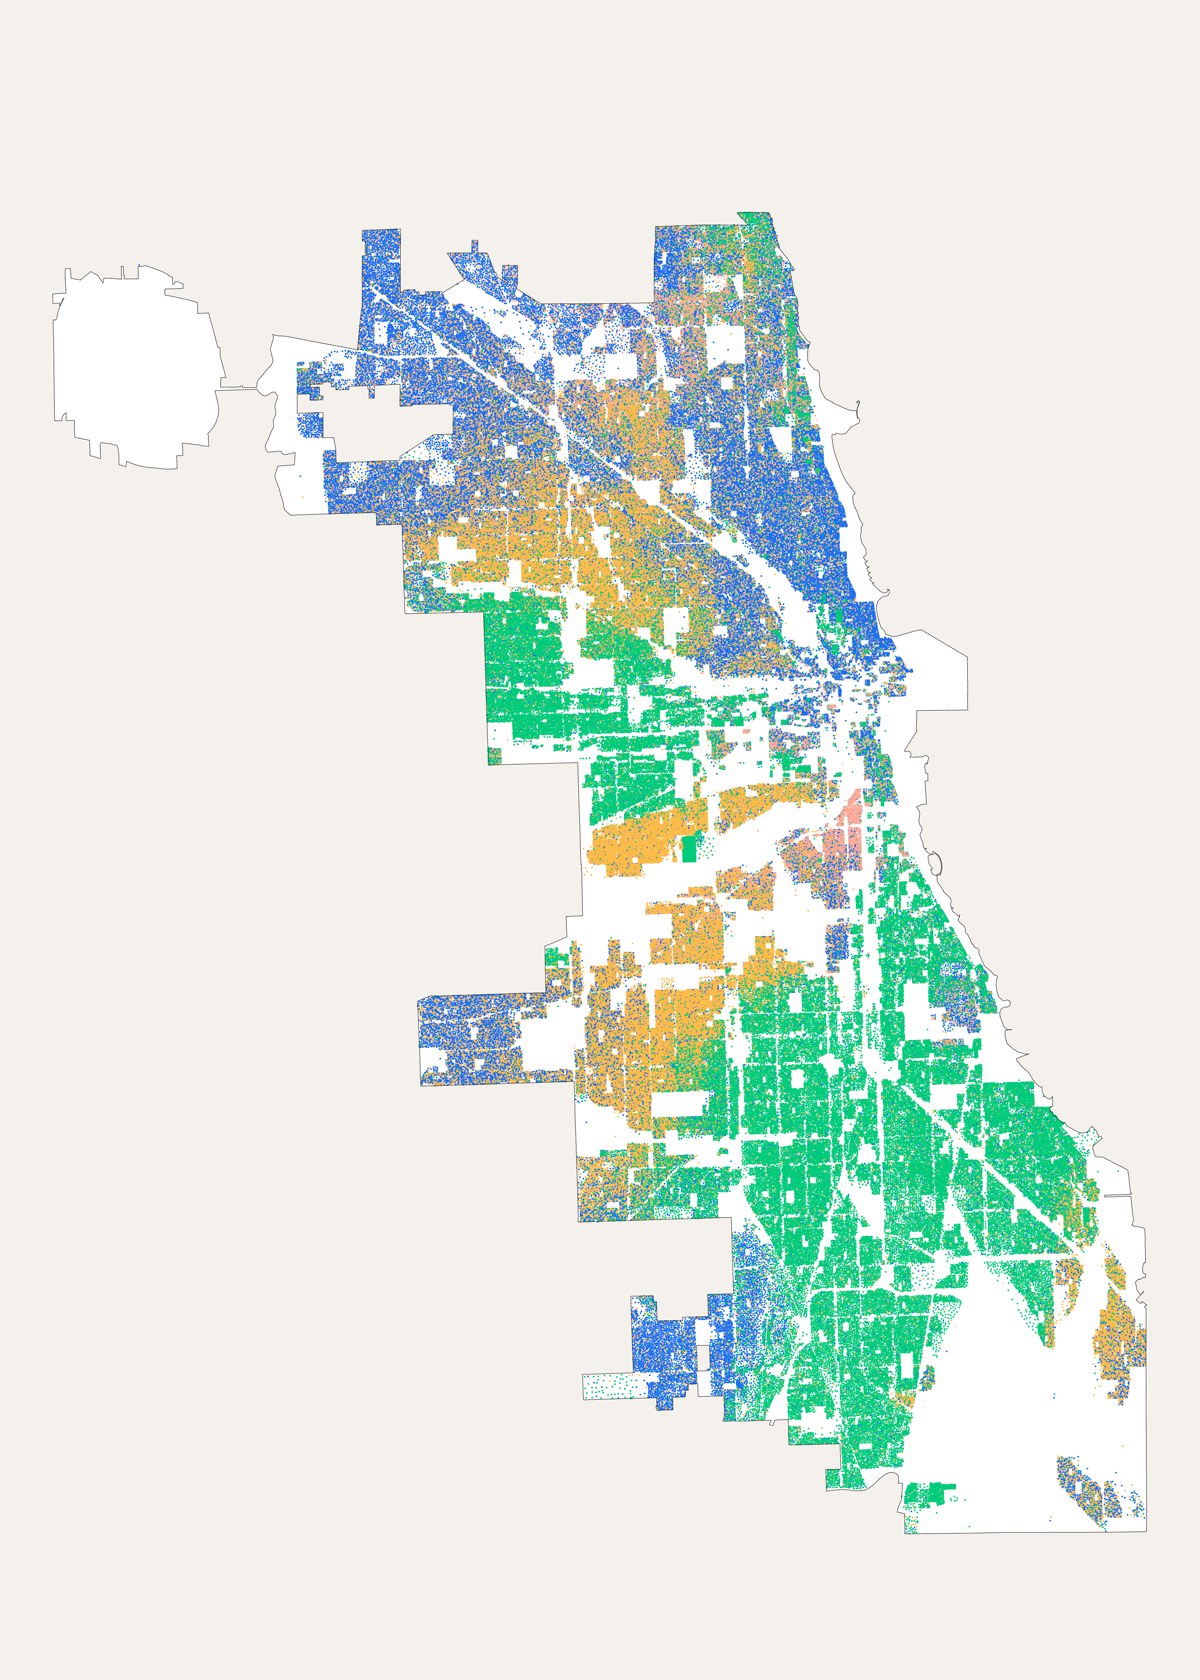 Morphocode Explorer: Chicago Demographics Map